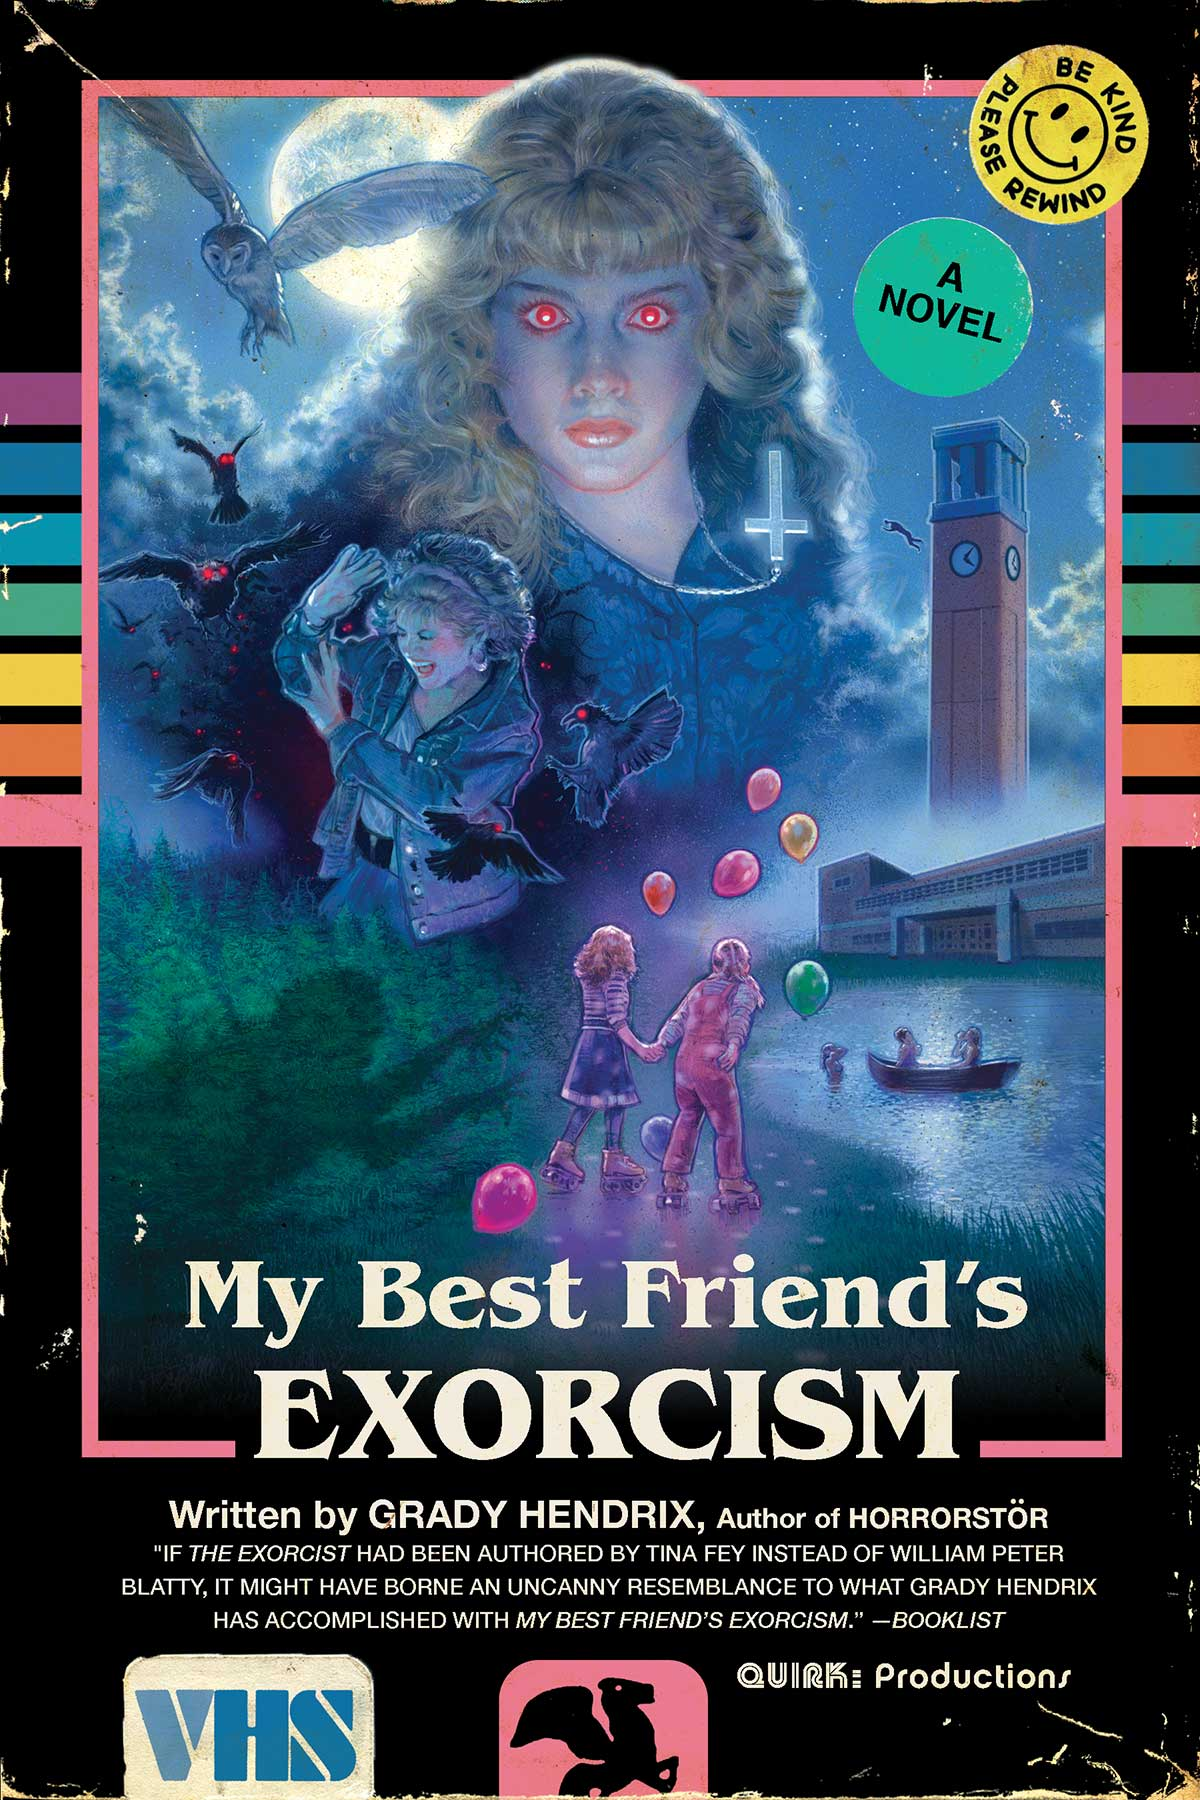 Home Design 3d Second Story Cover Reveal For My Best Friend S Exorcism Looks Like